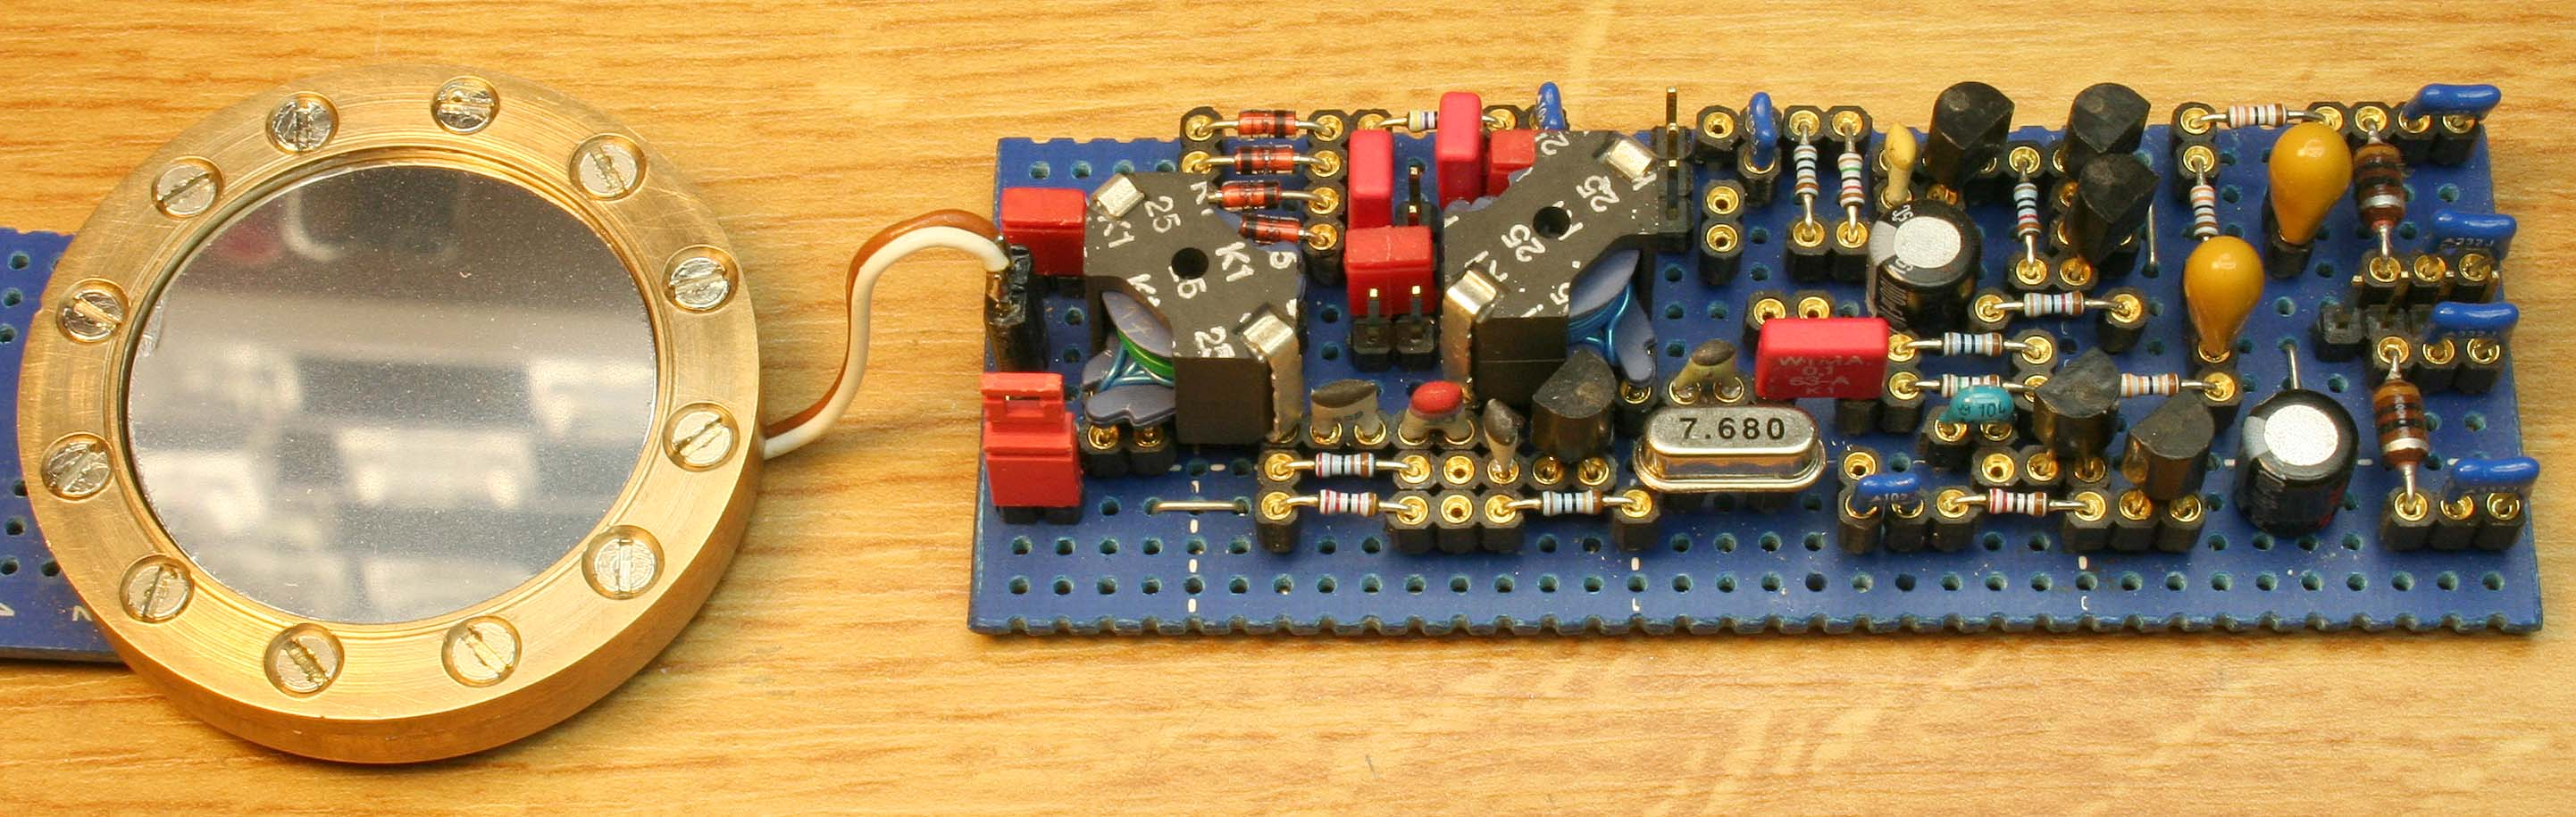 Photo of the RF-circuit board